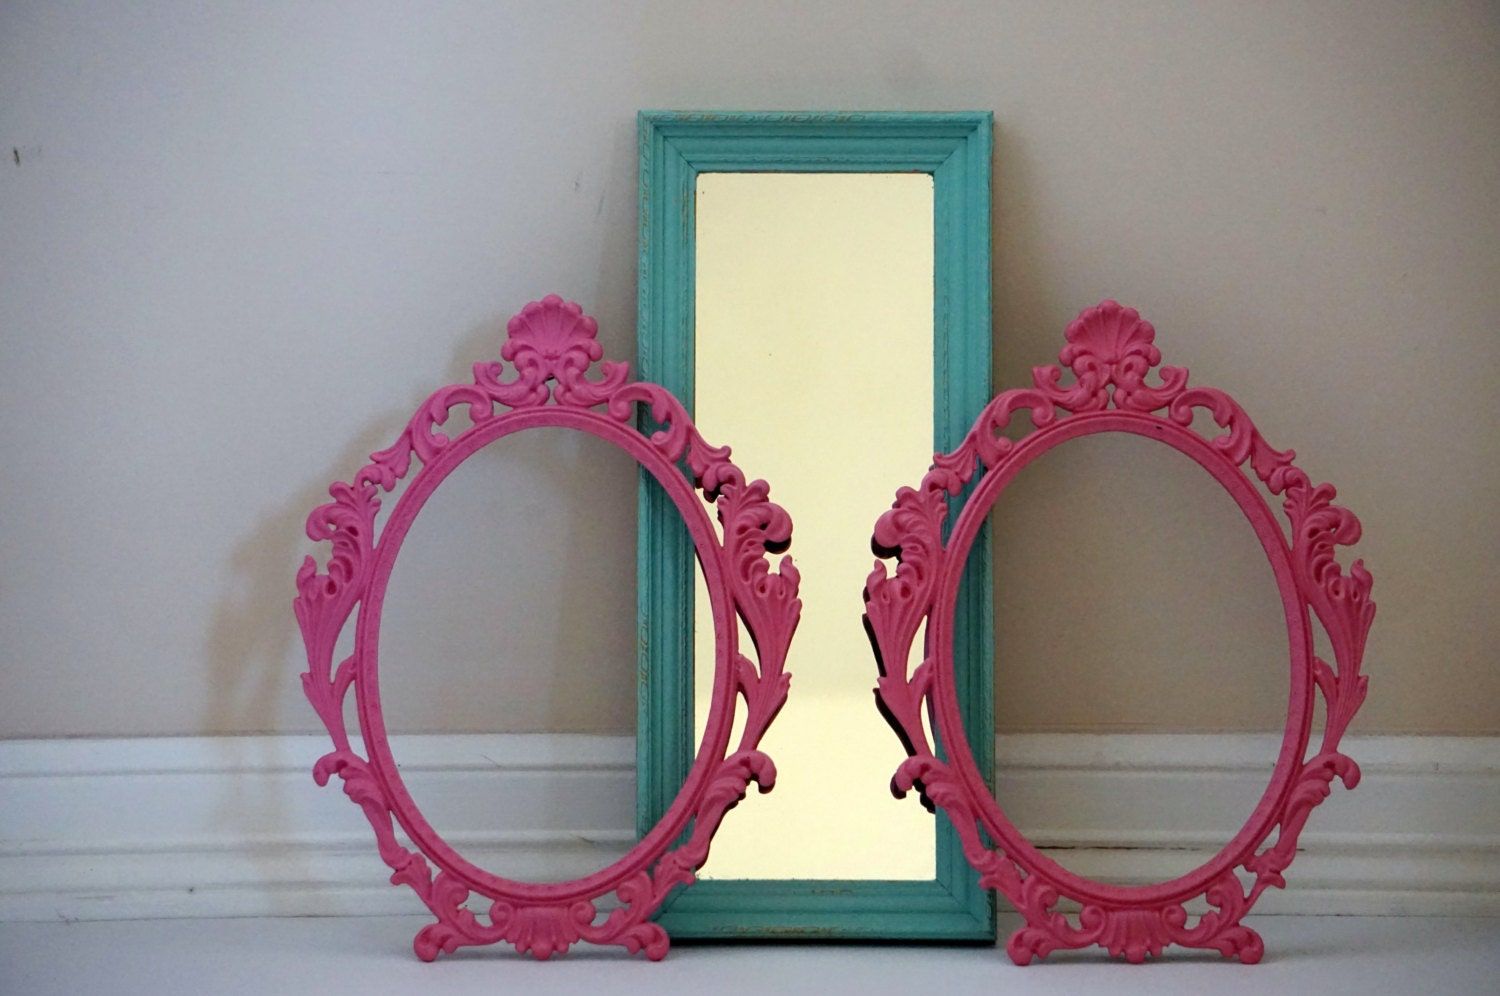 Mint Green And Pink Refurbished Gallery Frames And Mirror